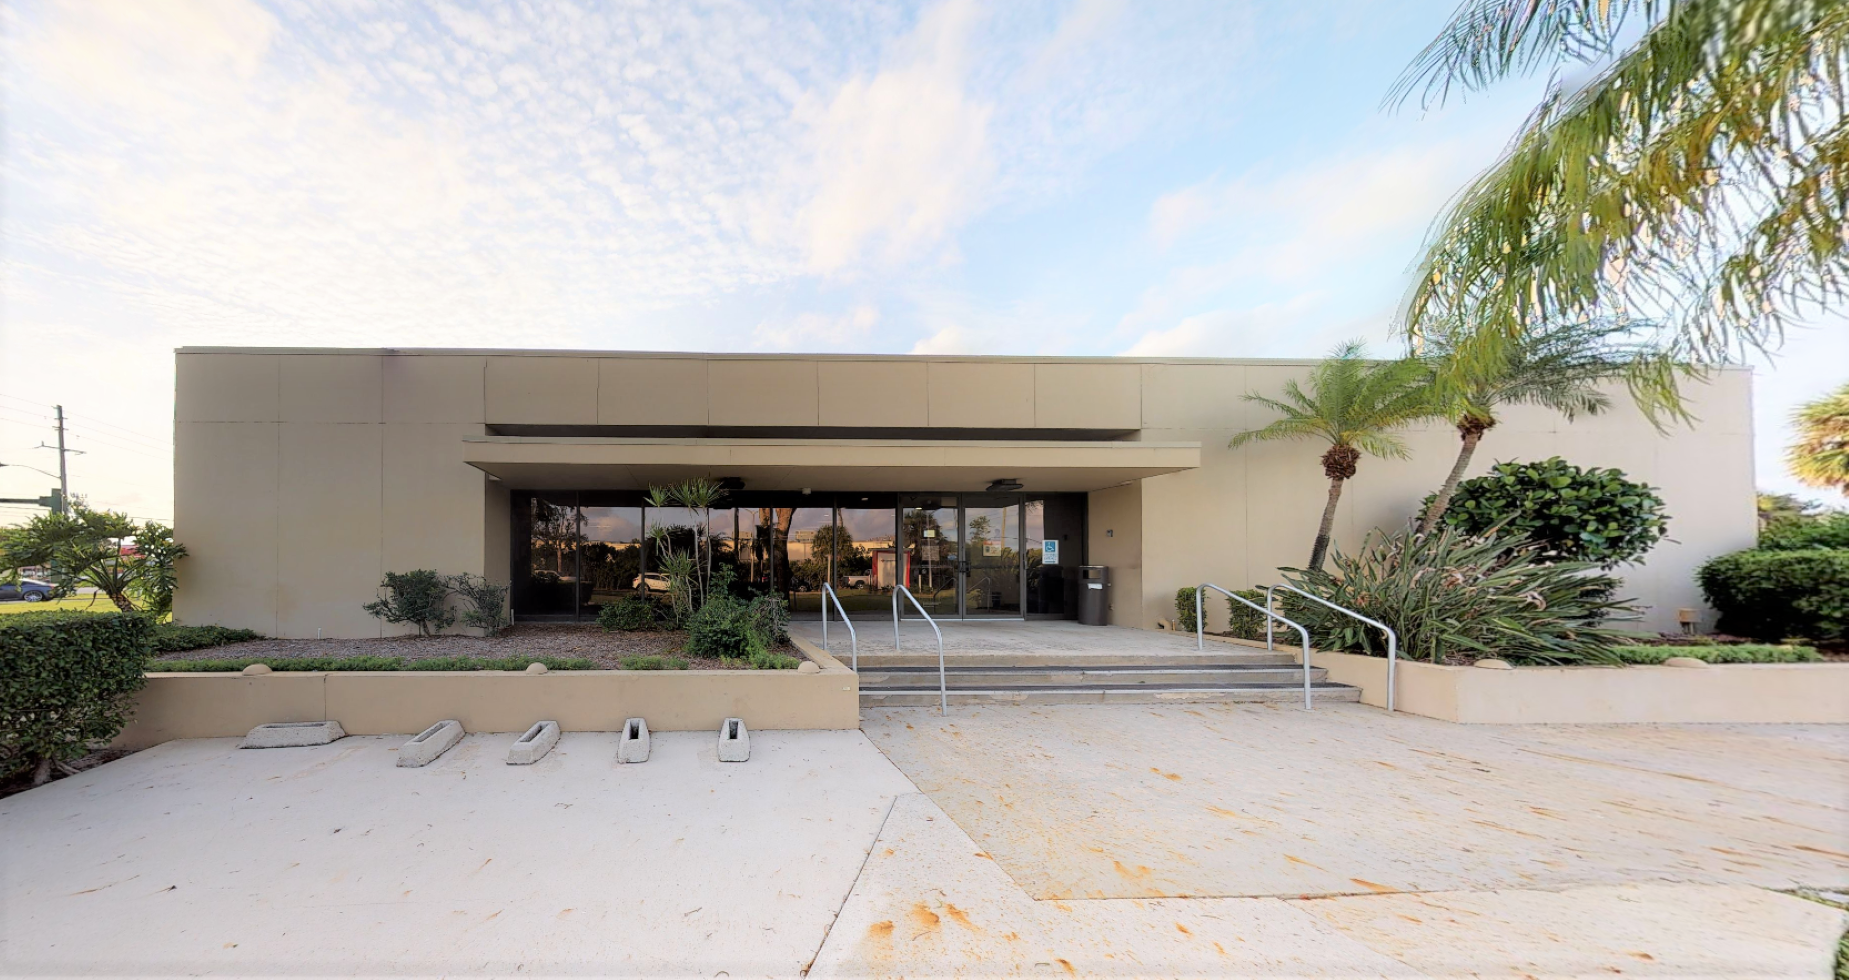 Bank of America financial center with drive-thru ATM | 7281 Lake Worth Rd, Lake Worth, FL 33467